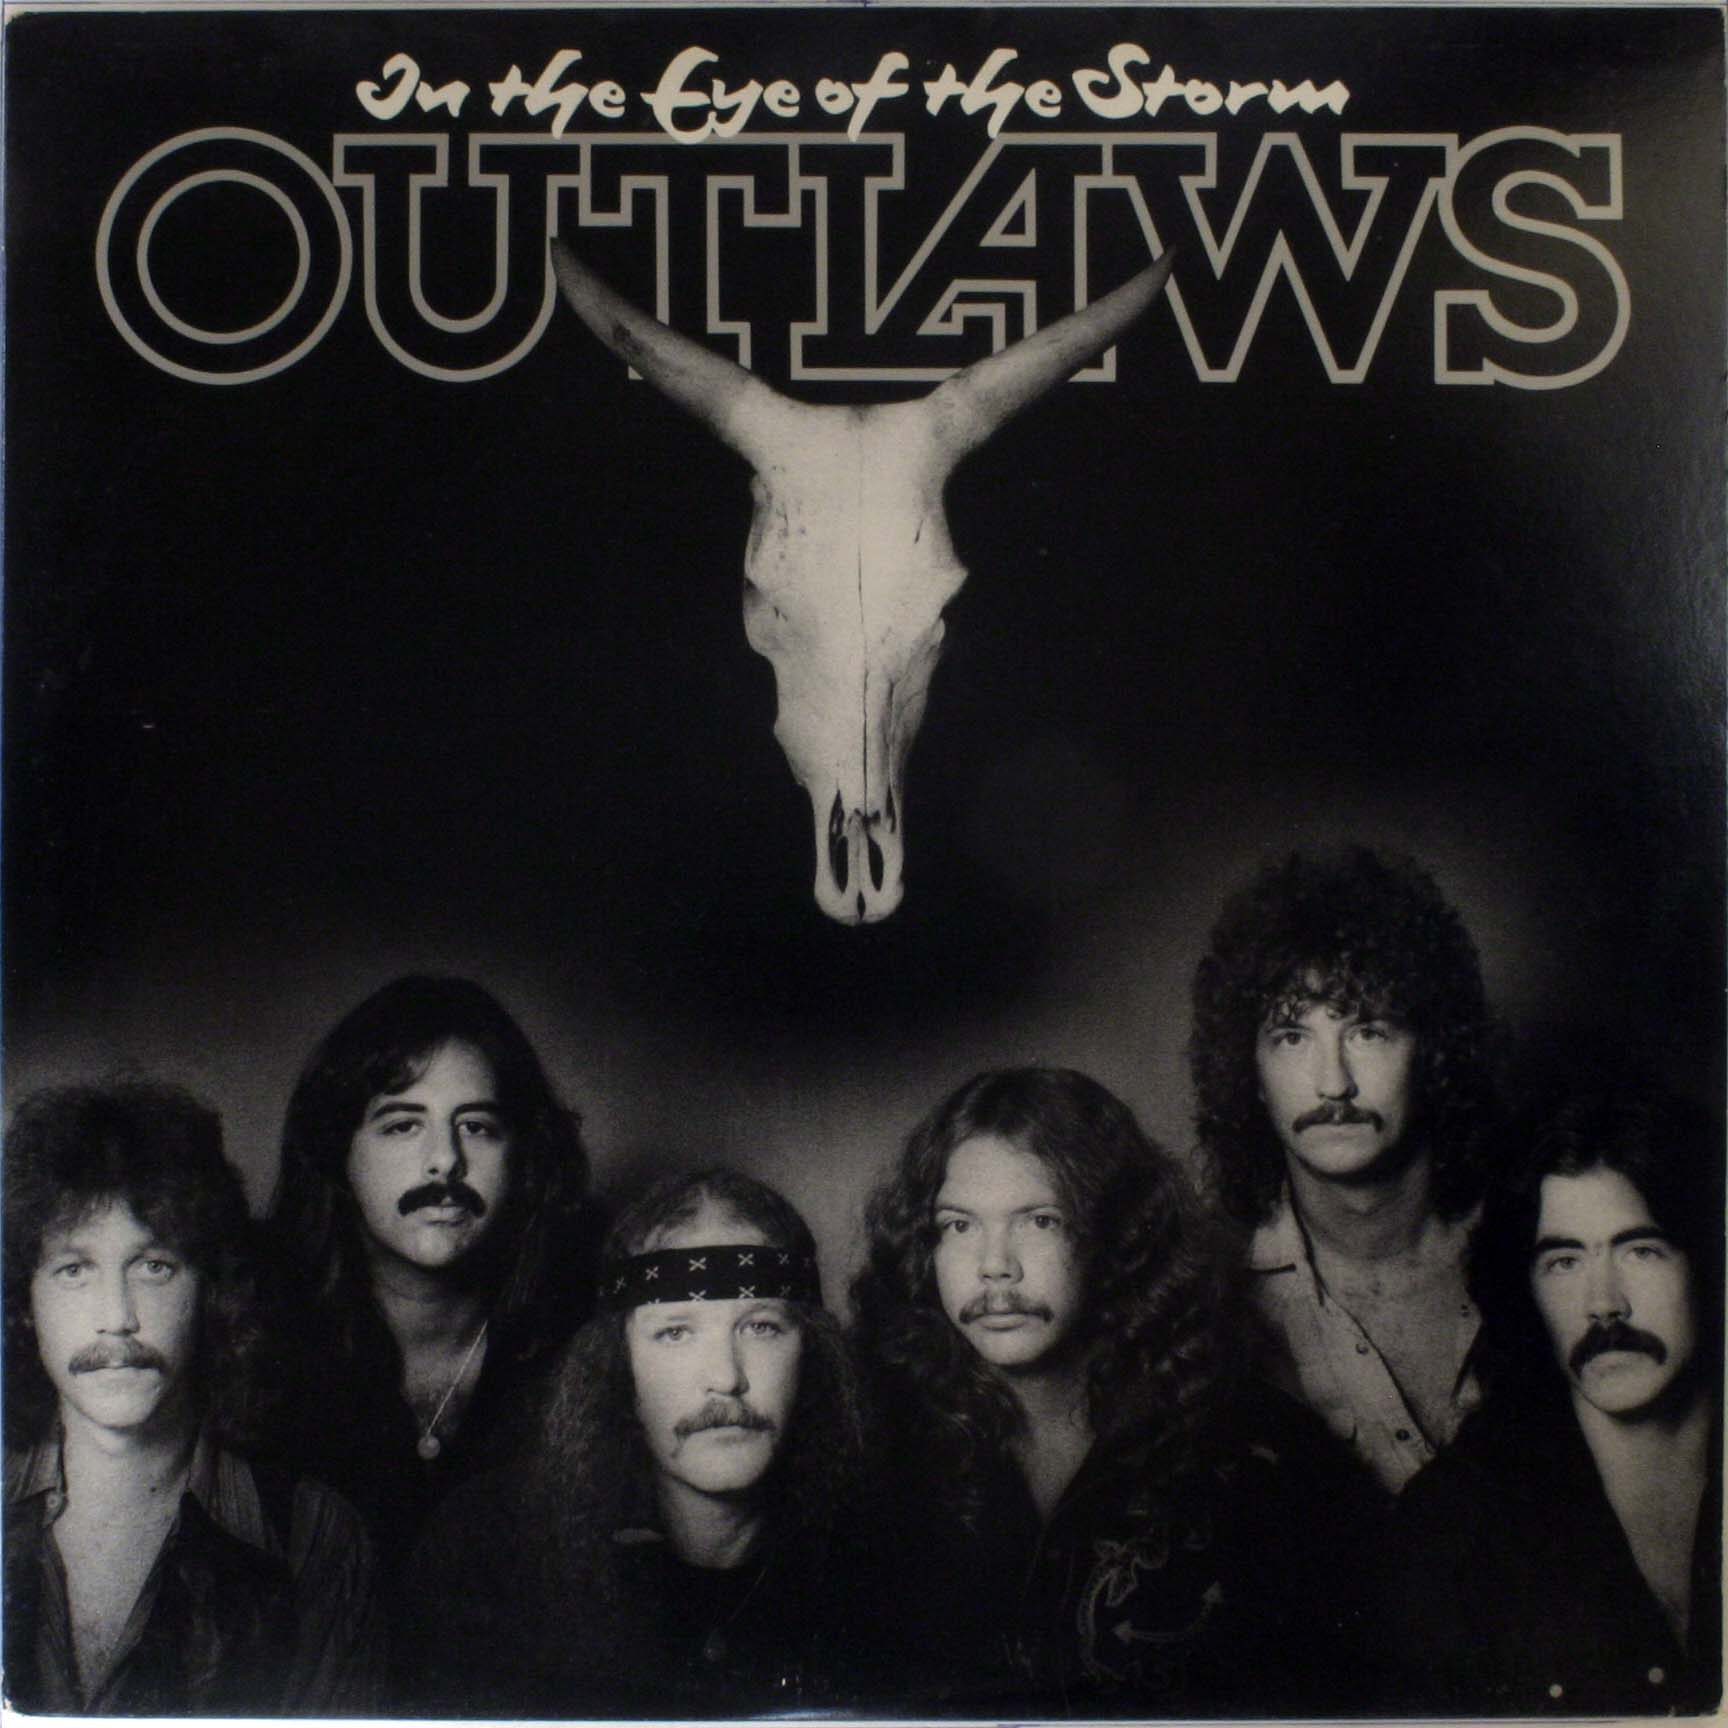 Outlaws In The Eye Of The Storm Records Lps Vinyl And